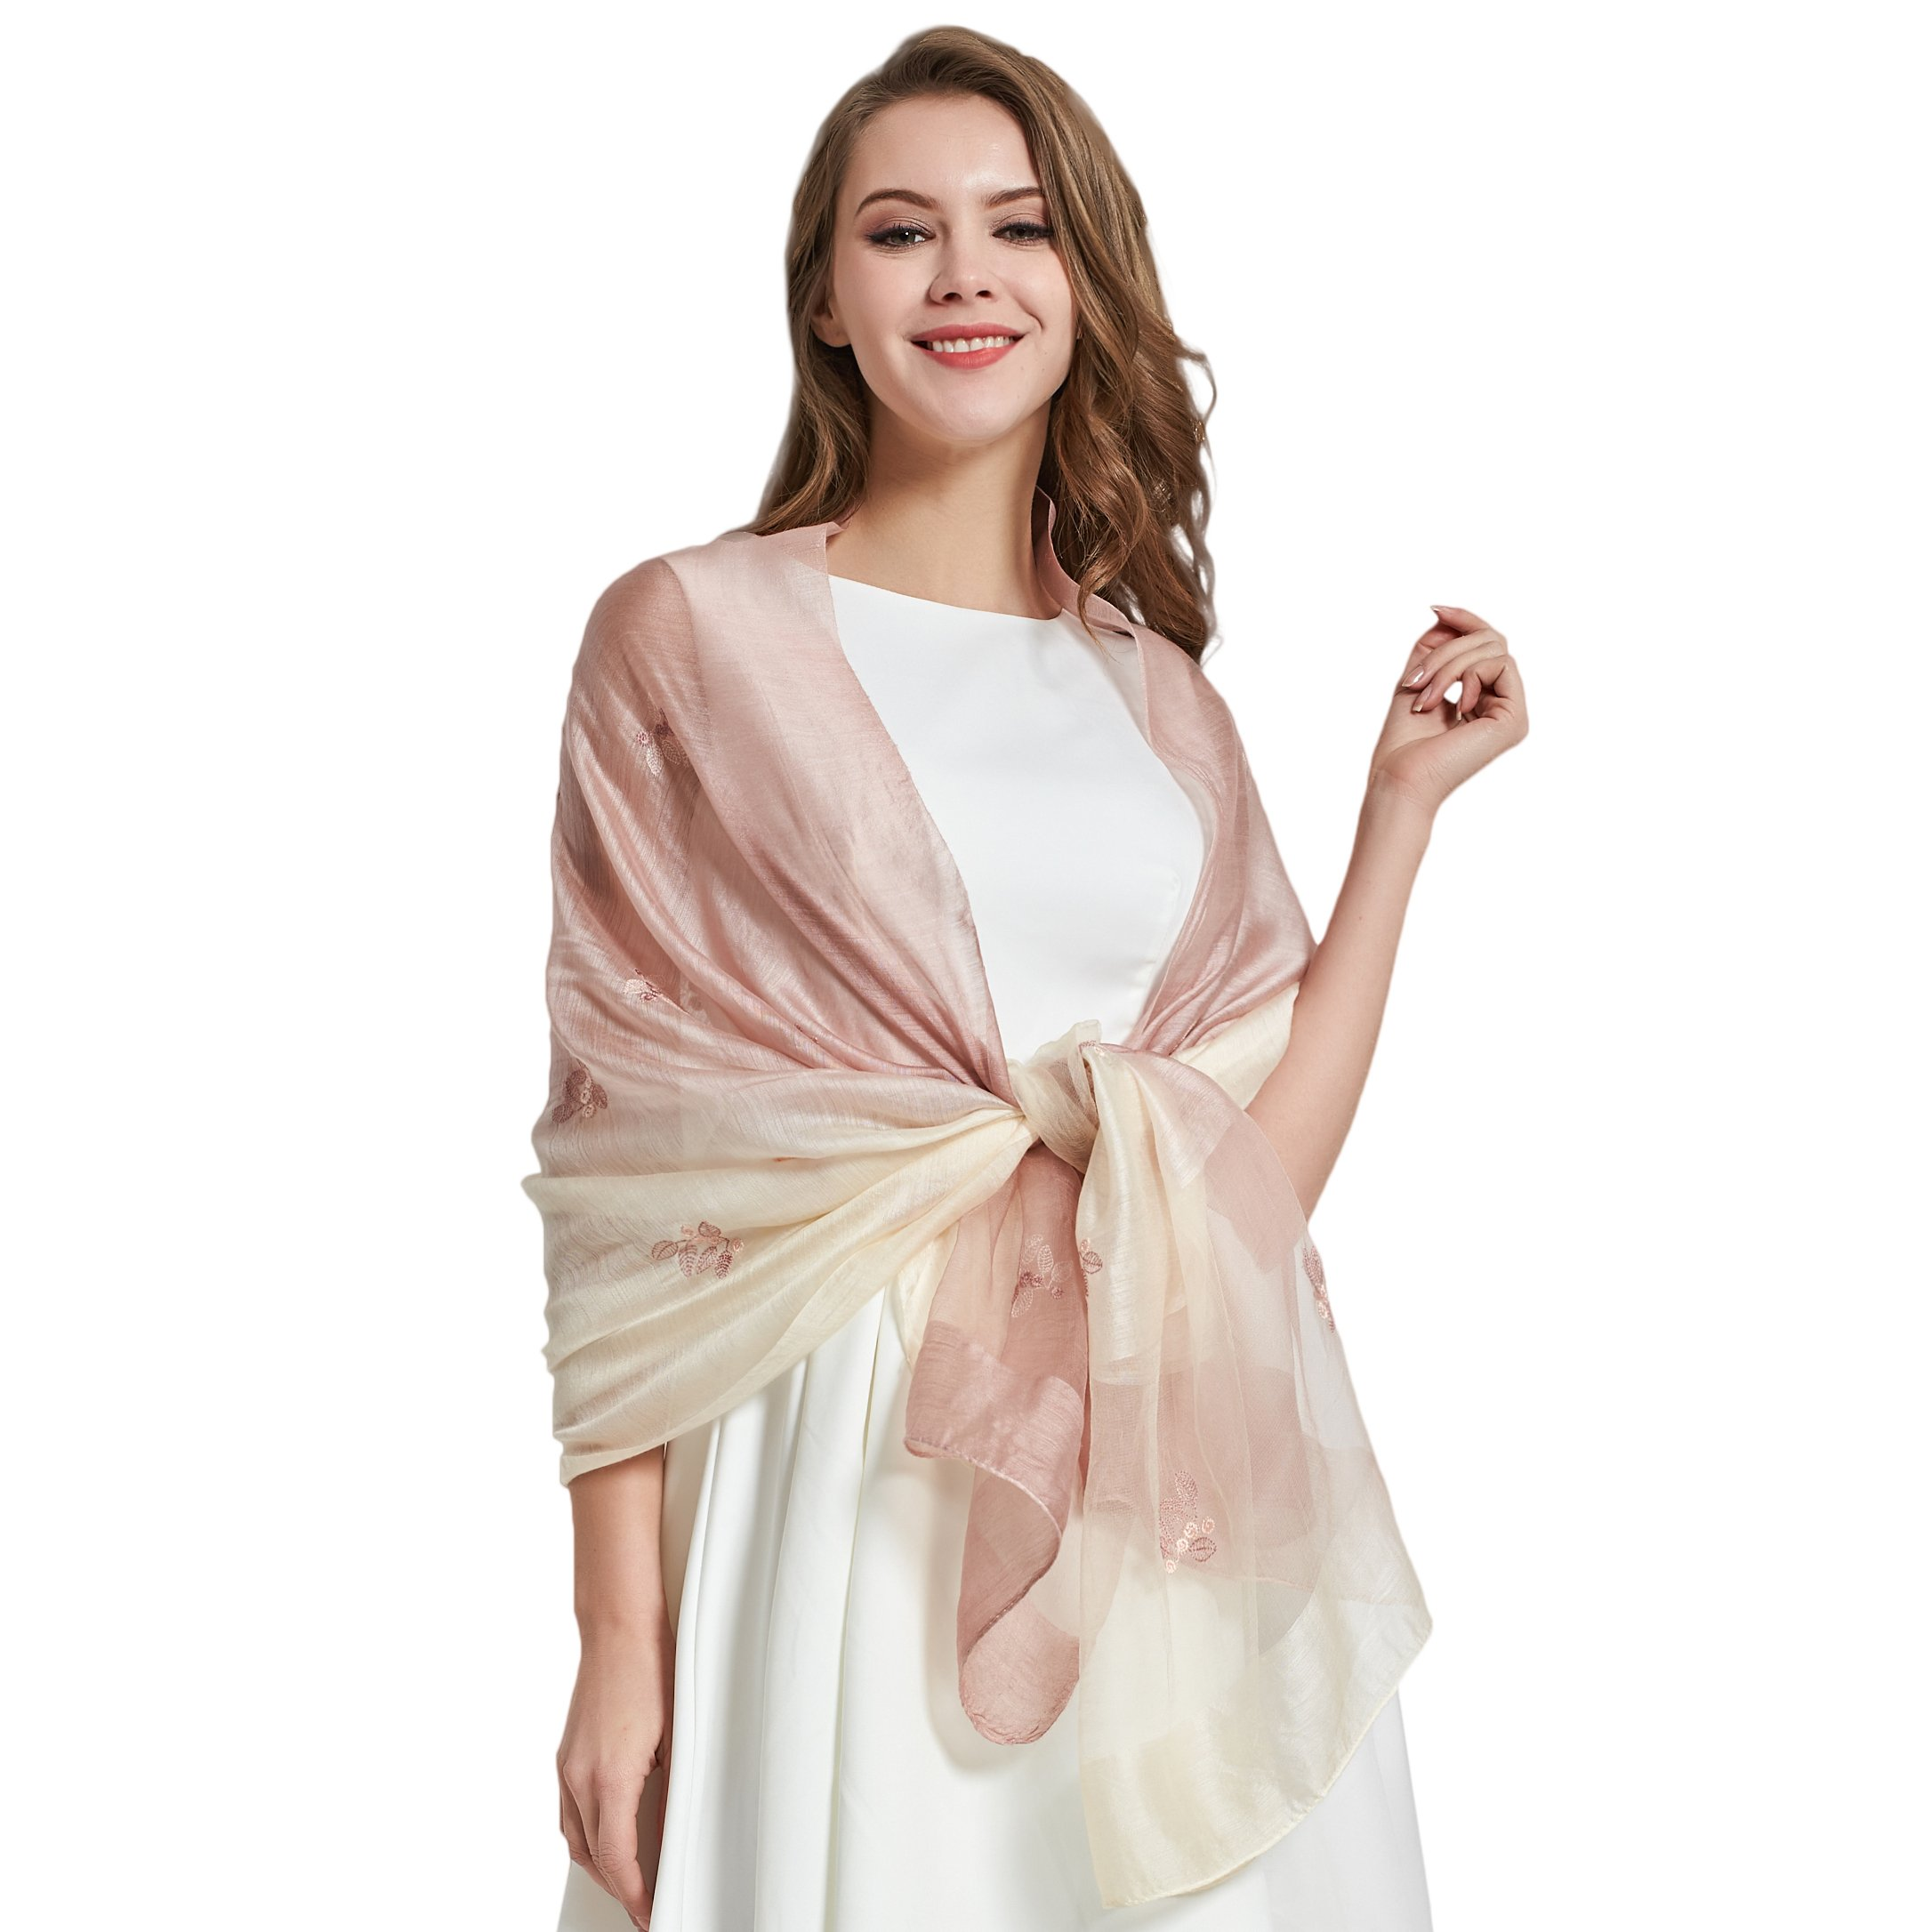 WENKOM Silk Scarf for Women Fashion Shawl Elegant Wrap for All Seasons Lightweight and Luxury Style with Gift Box 2018 Spring & Summer Collection New Launch Embroidered with Flowers Pink Color